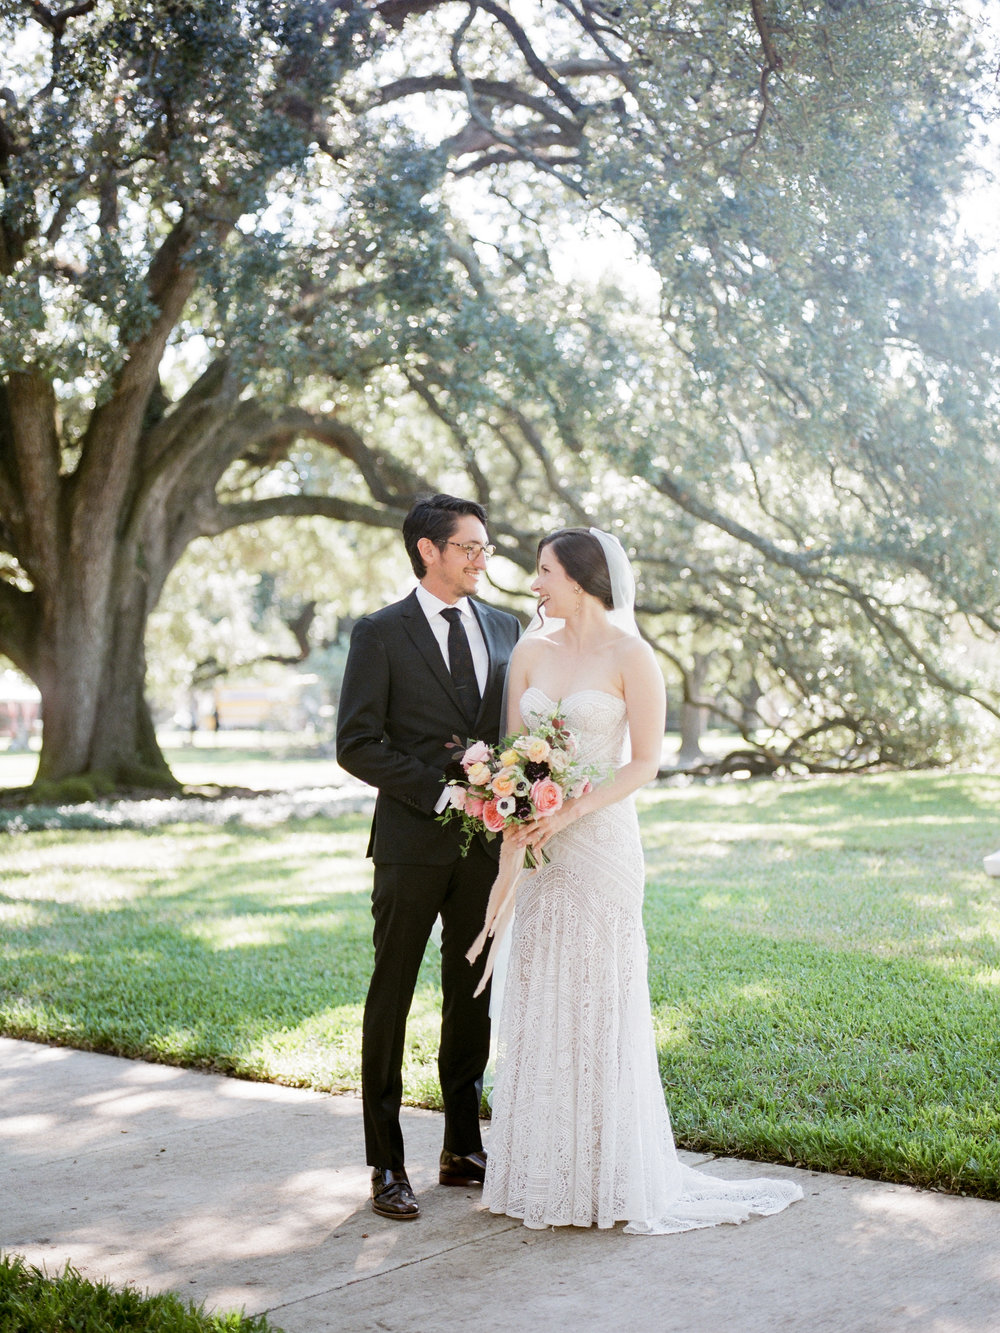 Intimate wedding photographer | destination wedding photographer | Houston wedding photographer | Film wedding photographer